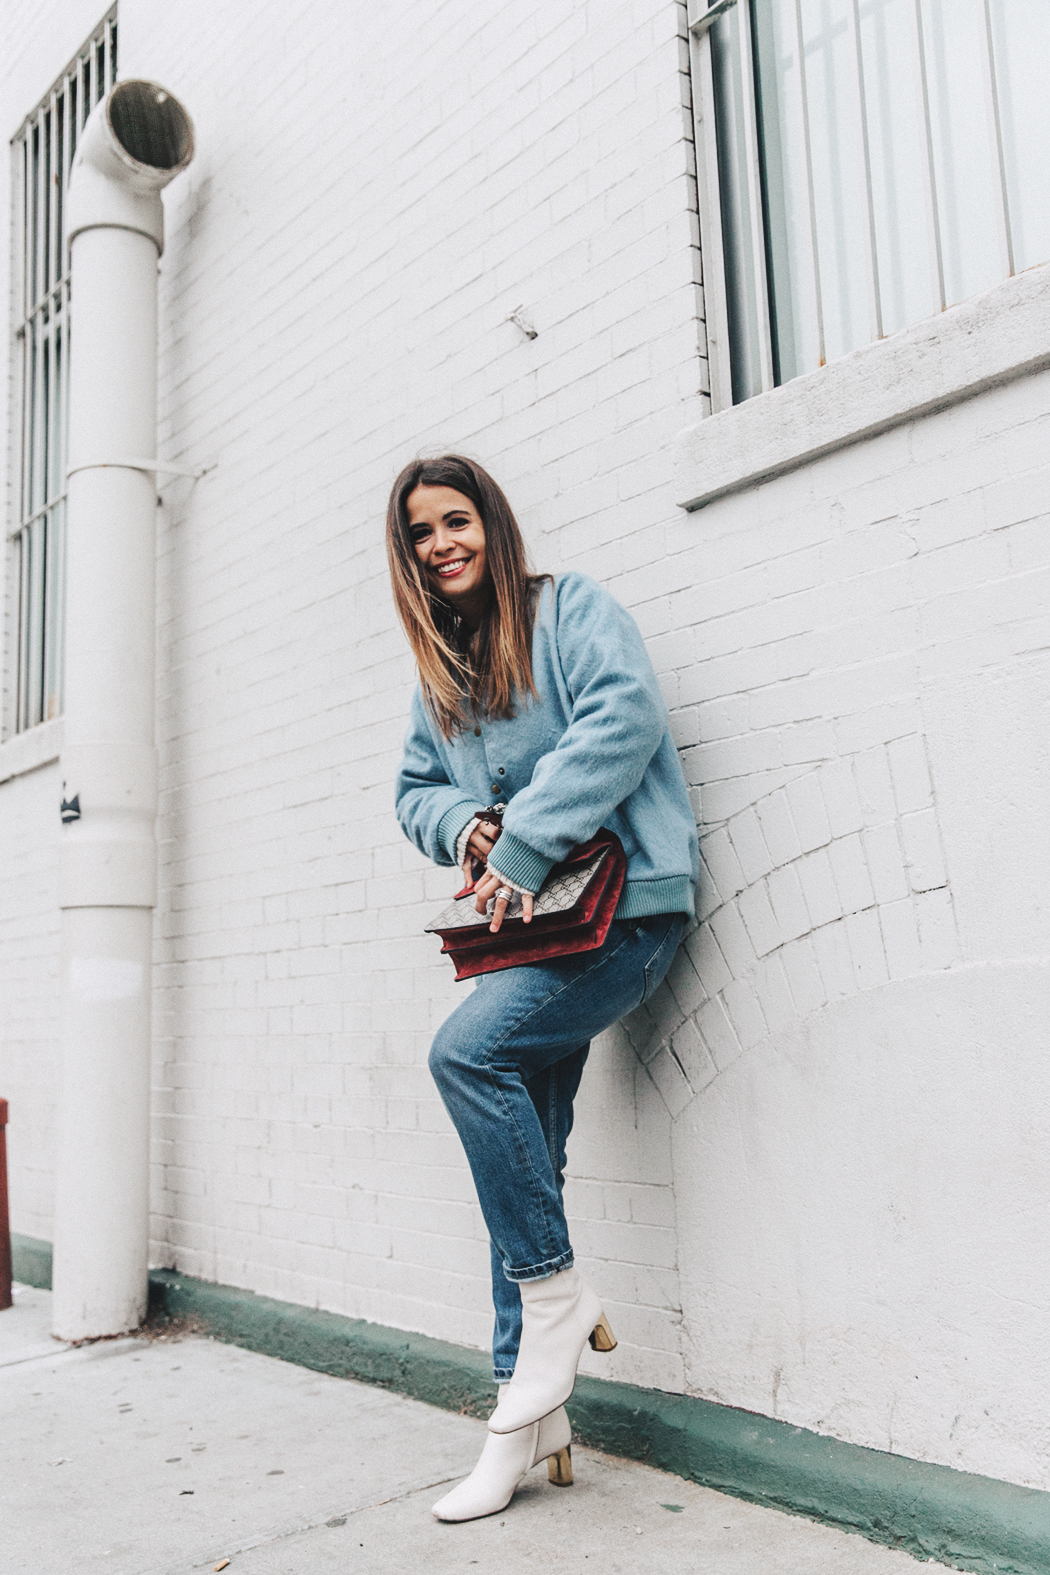 Blue_Bomber-Ganni-Topshop_Jeans-White_Boots-Gucci_Bag-Outfit-NYFW-New_York-Street_Style-5b